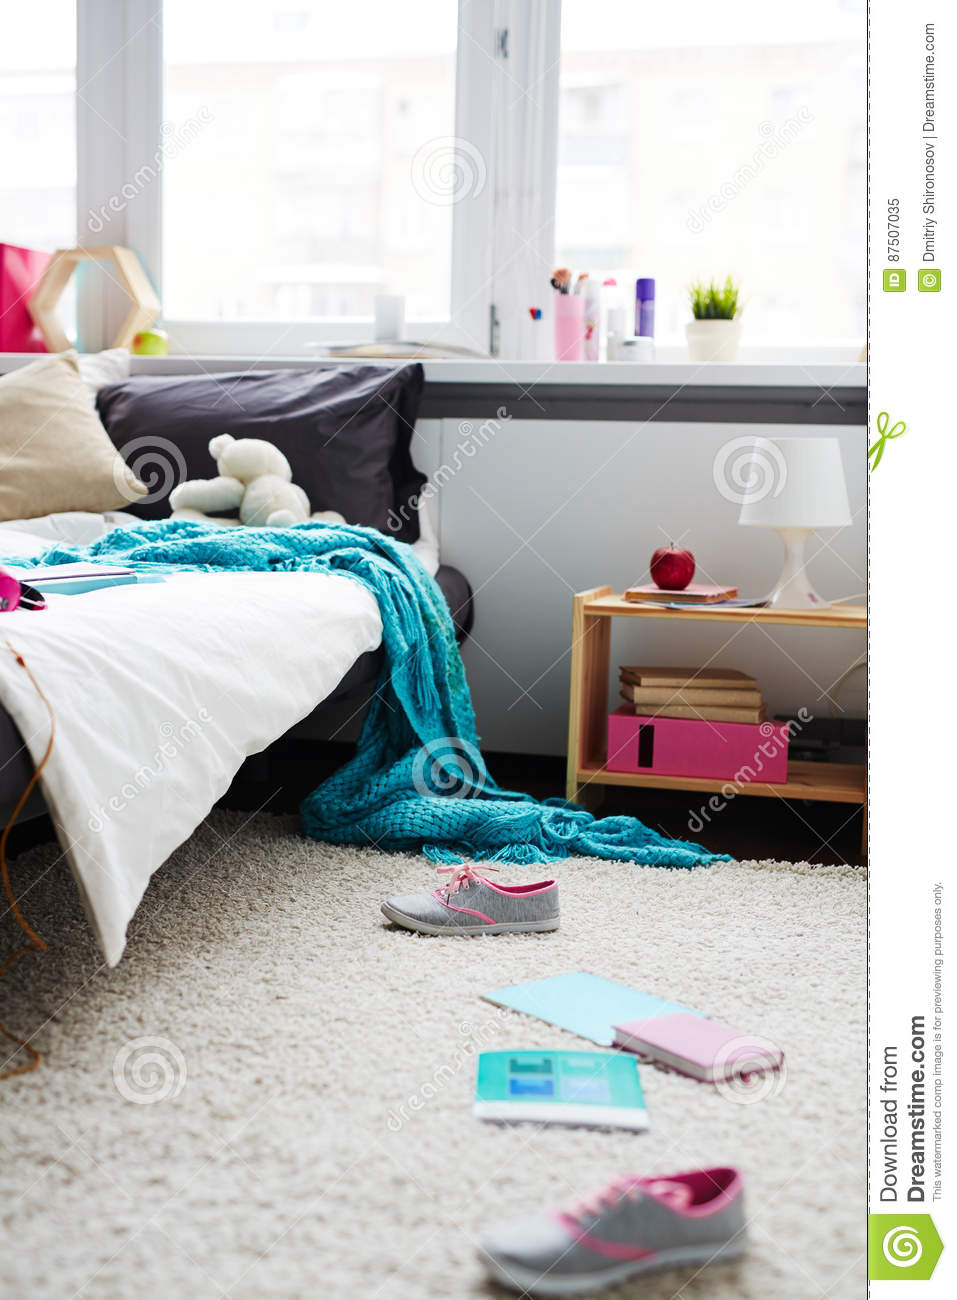 Modern Messy Bedroom Of Teenage Girl With Sneakers Copybooks Scattered On Carpet And Blanket Hanging Down From Bed